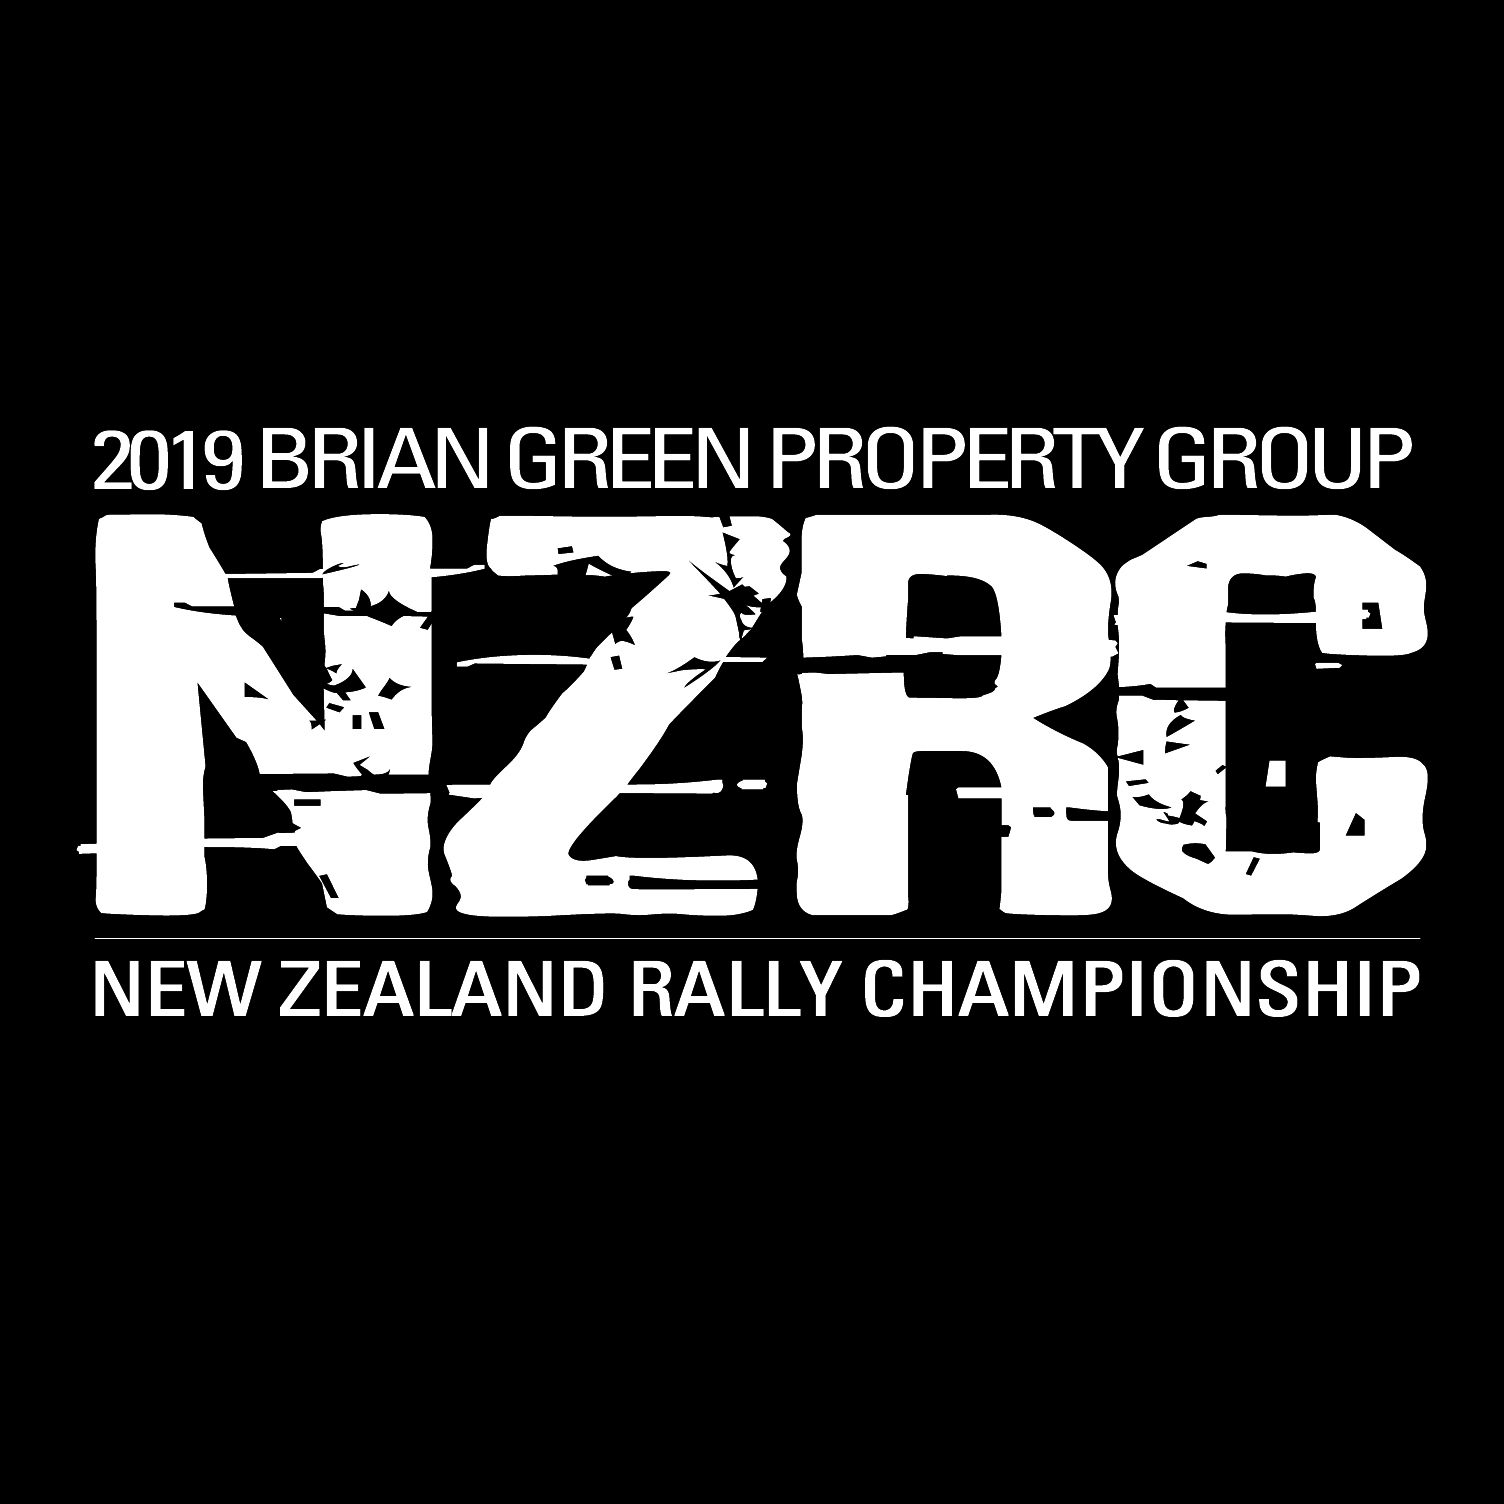 5min with the CHAMP | :: Brian Green Property Group New Zealand Rally Championship ::